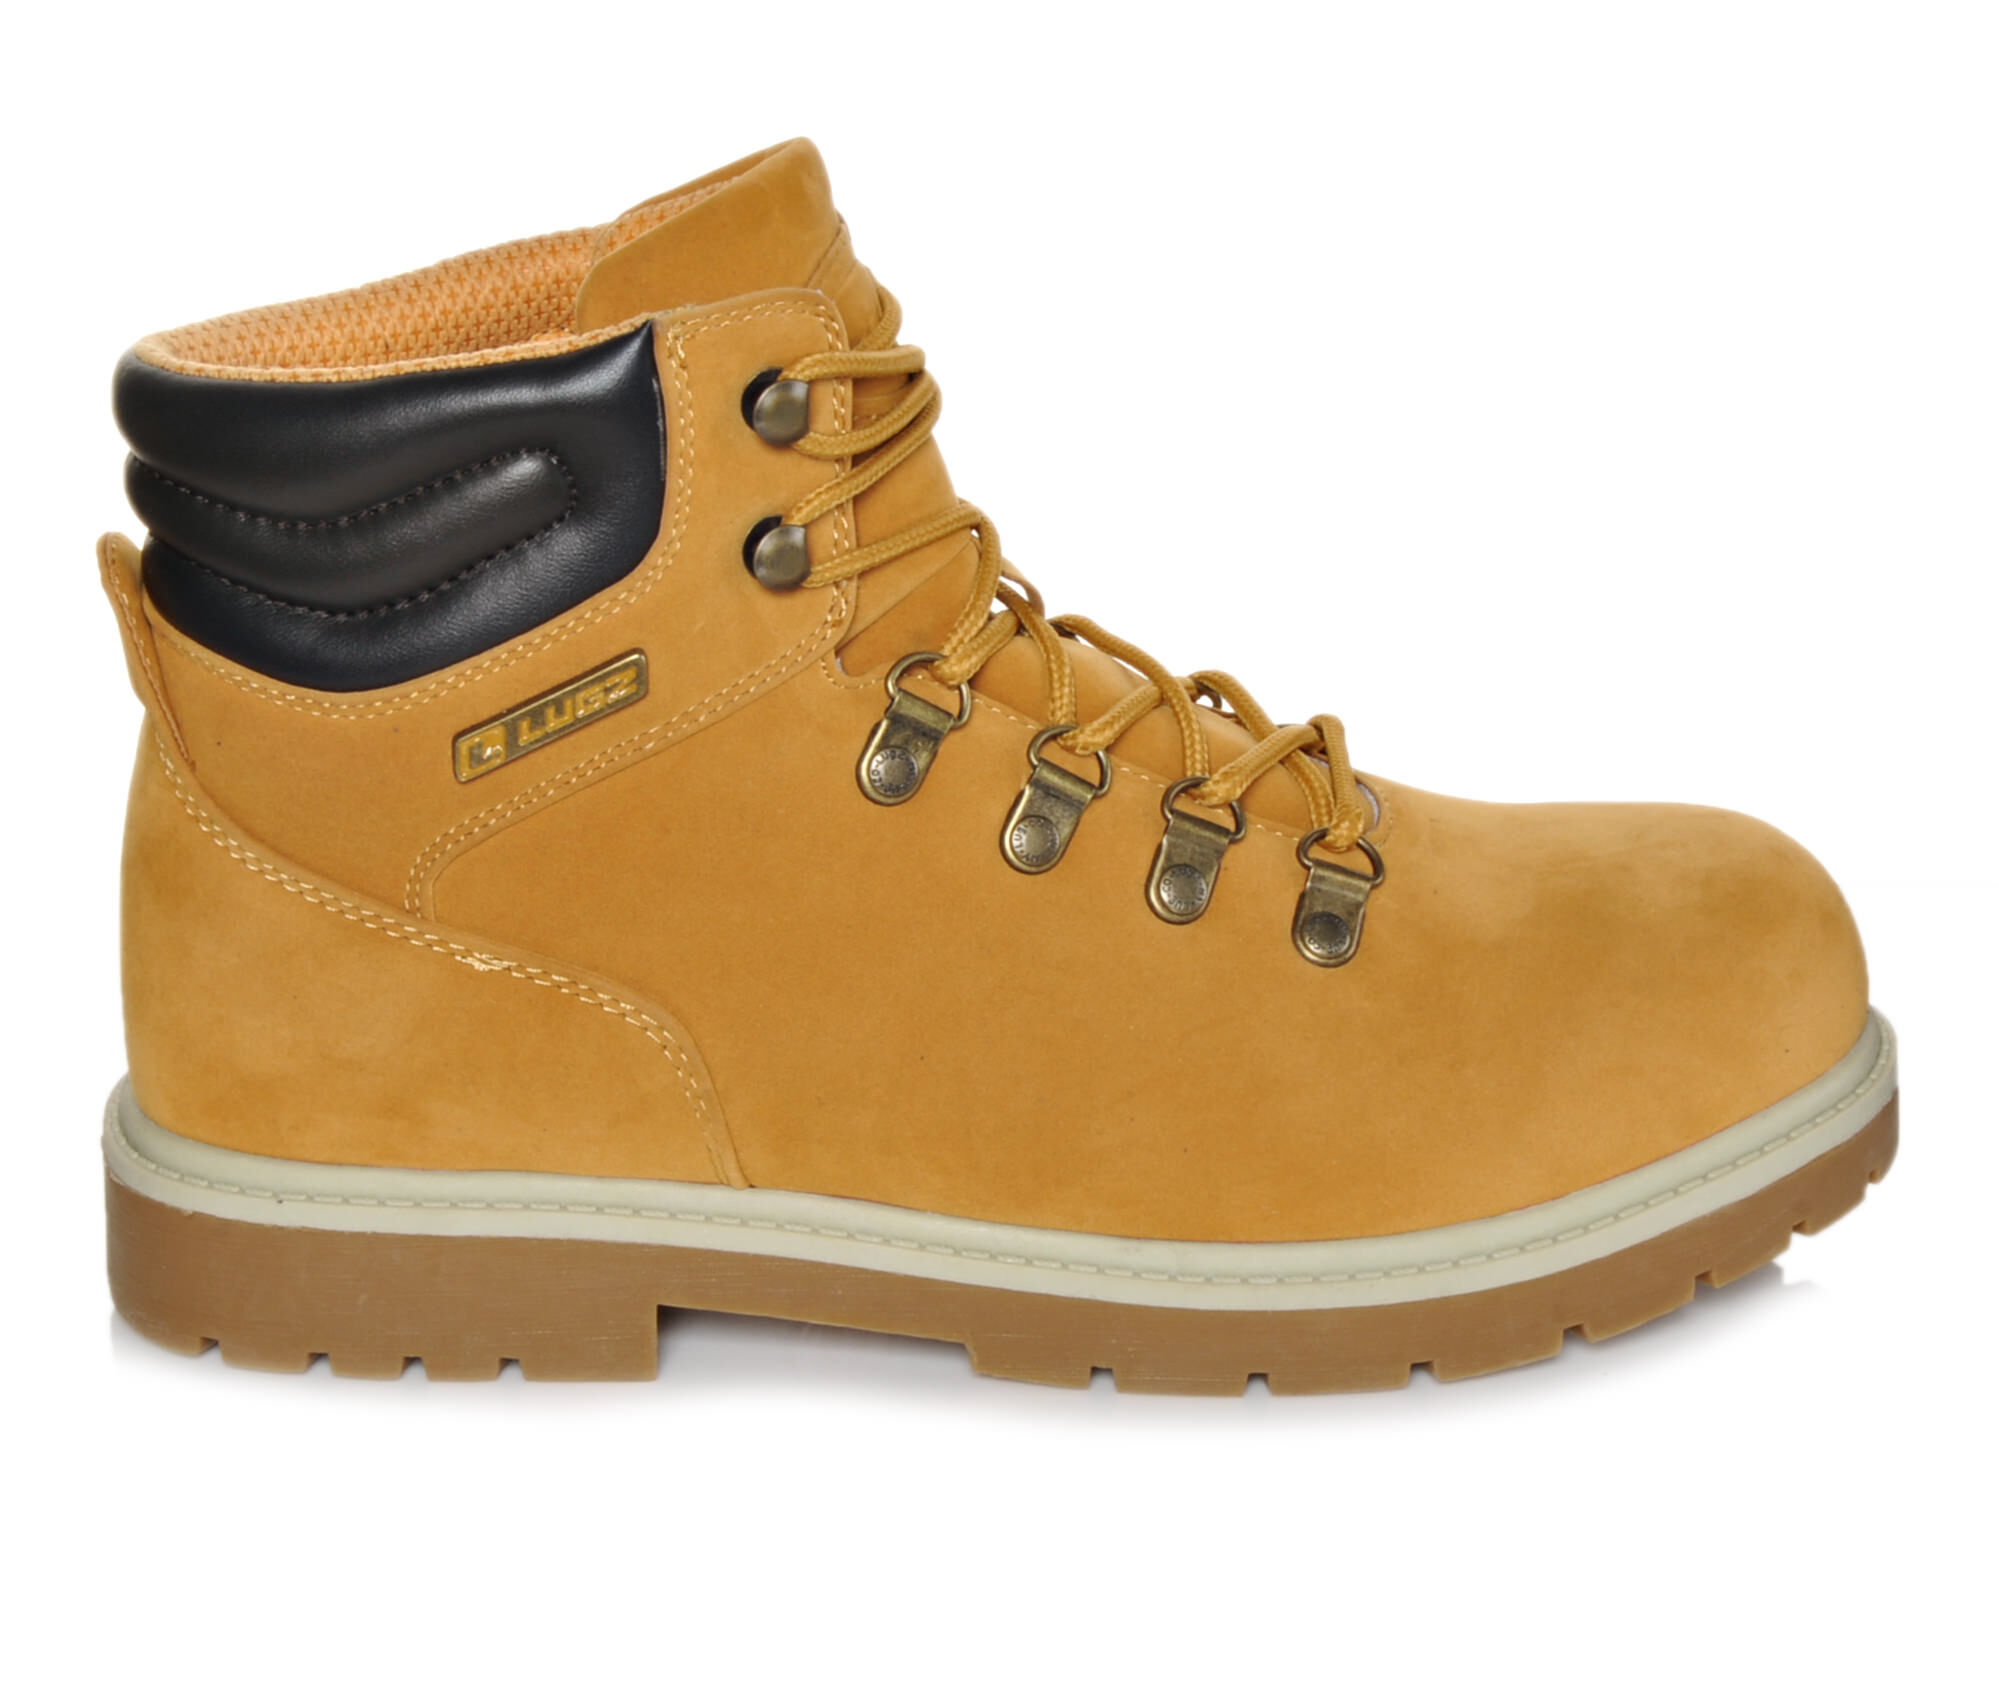 Men's Lugz Grotto Boots best prices cheap online get to buy cheap online recommend sale online outlet locations explore online s3GG2r7M